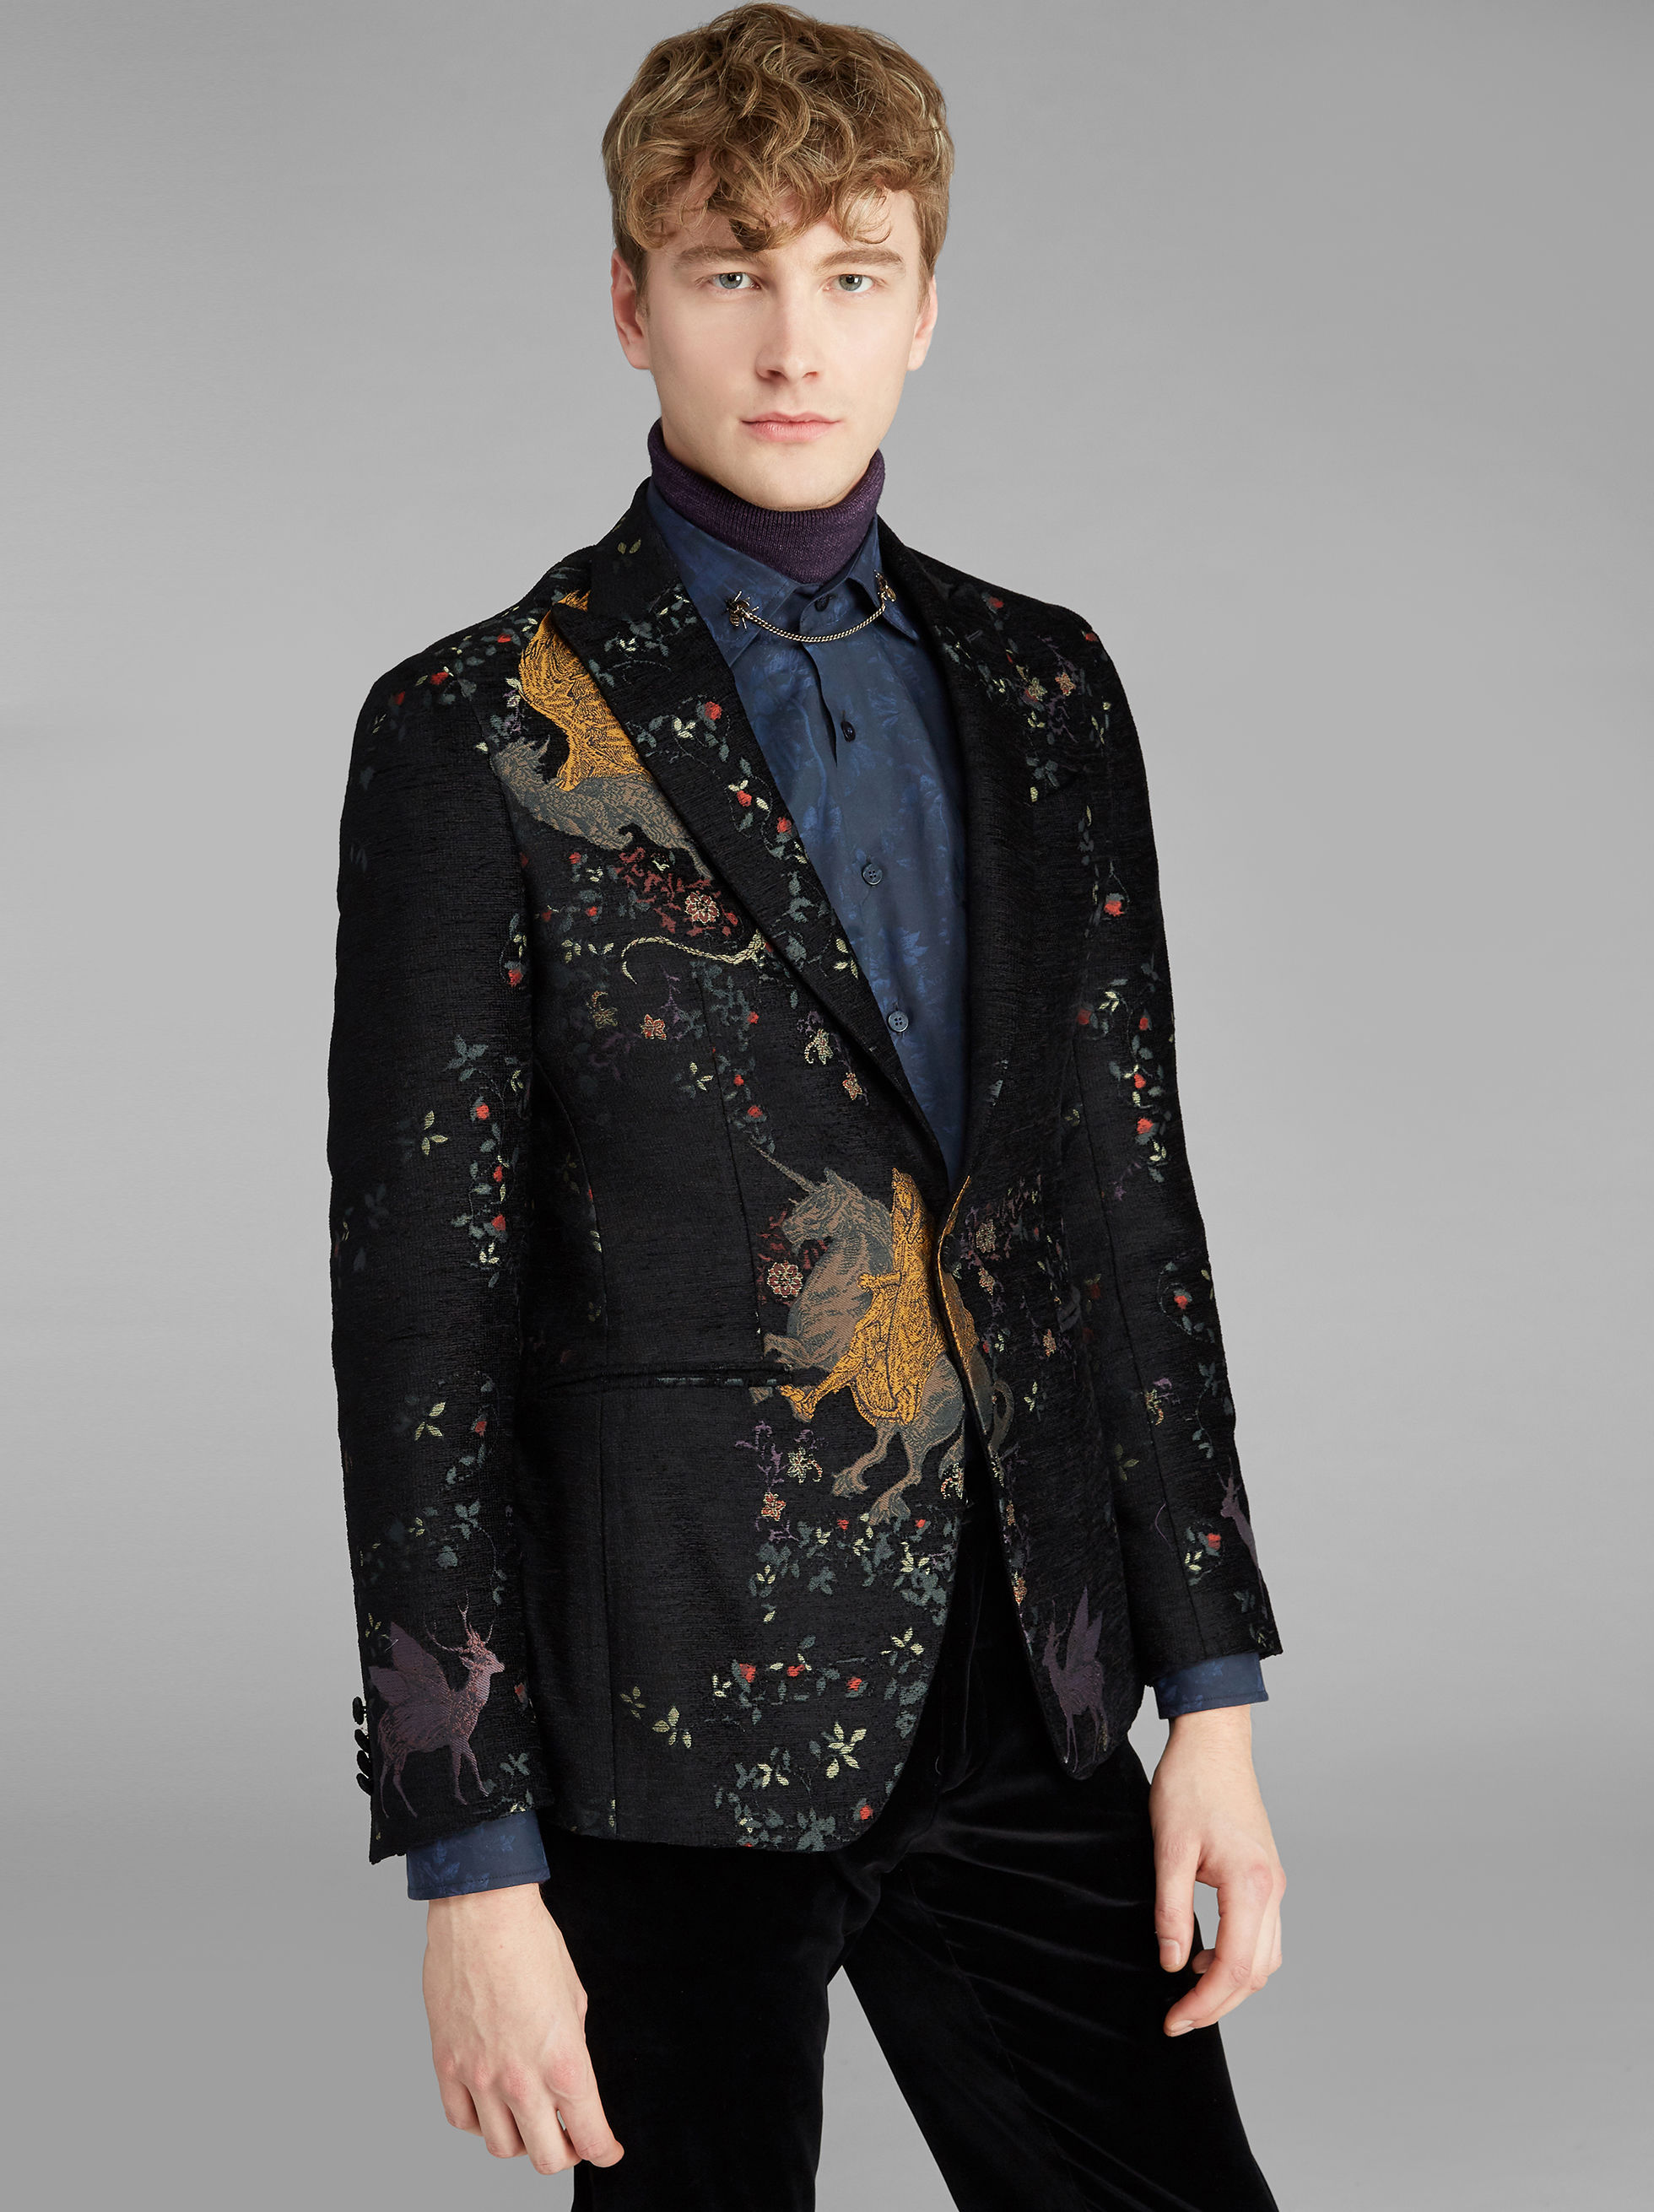 JACQUARD SEMI-TRADITIONAL JACKET